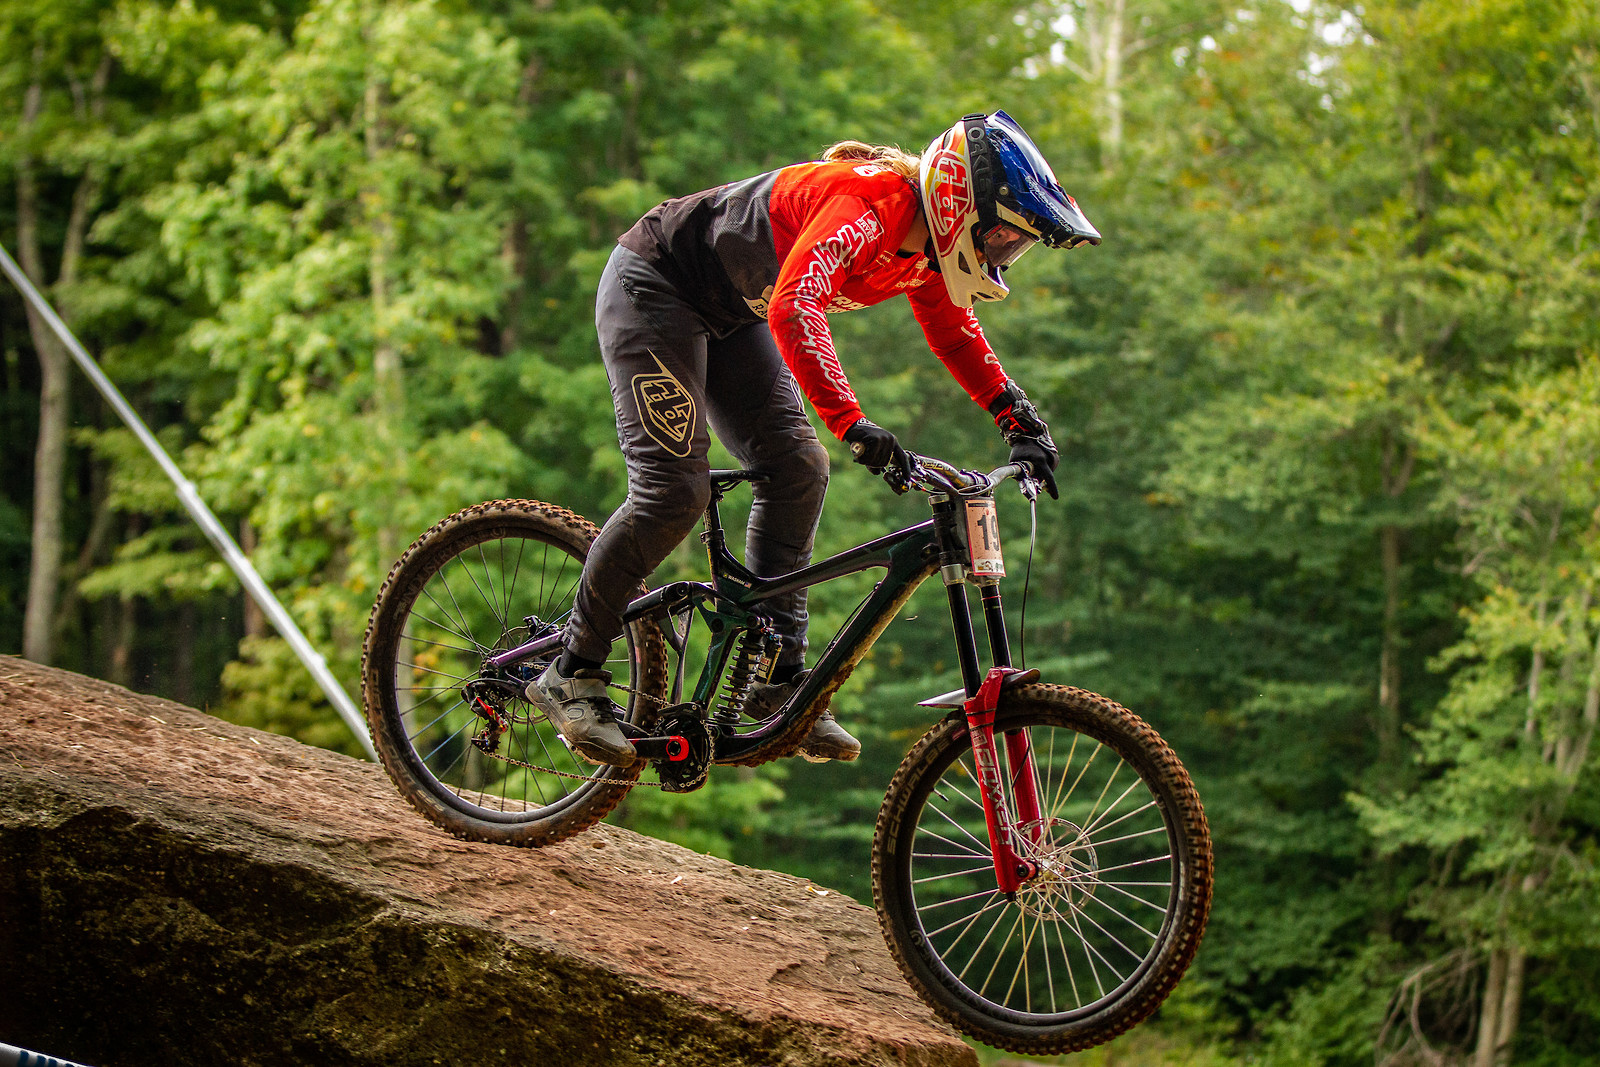 Caroline Washam - JackRice - Mountain Biking Pictures - Vital MTB